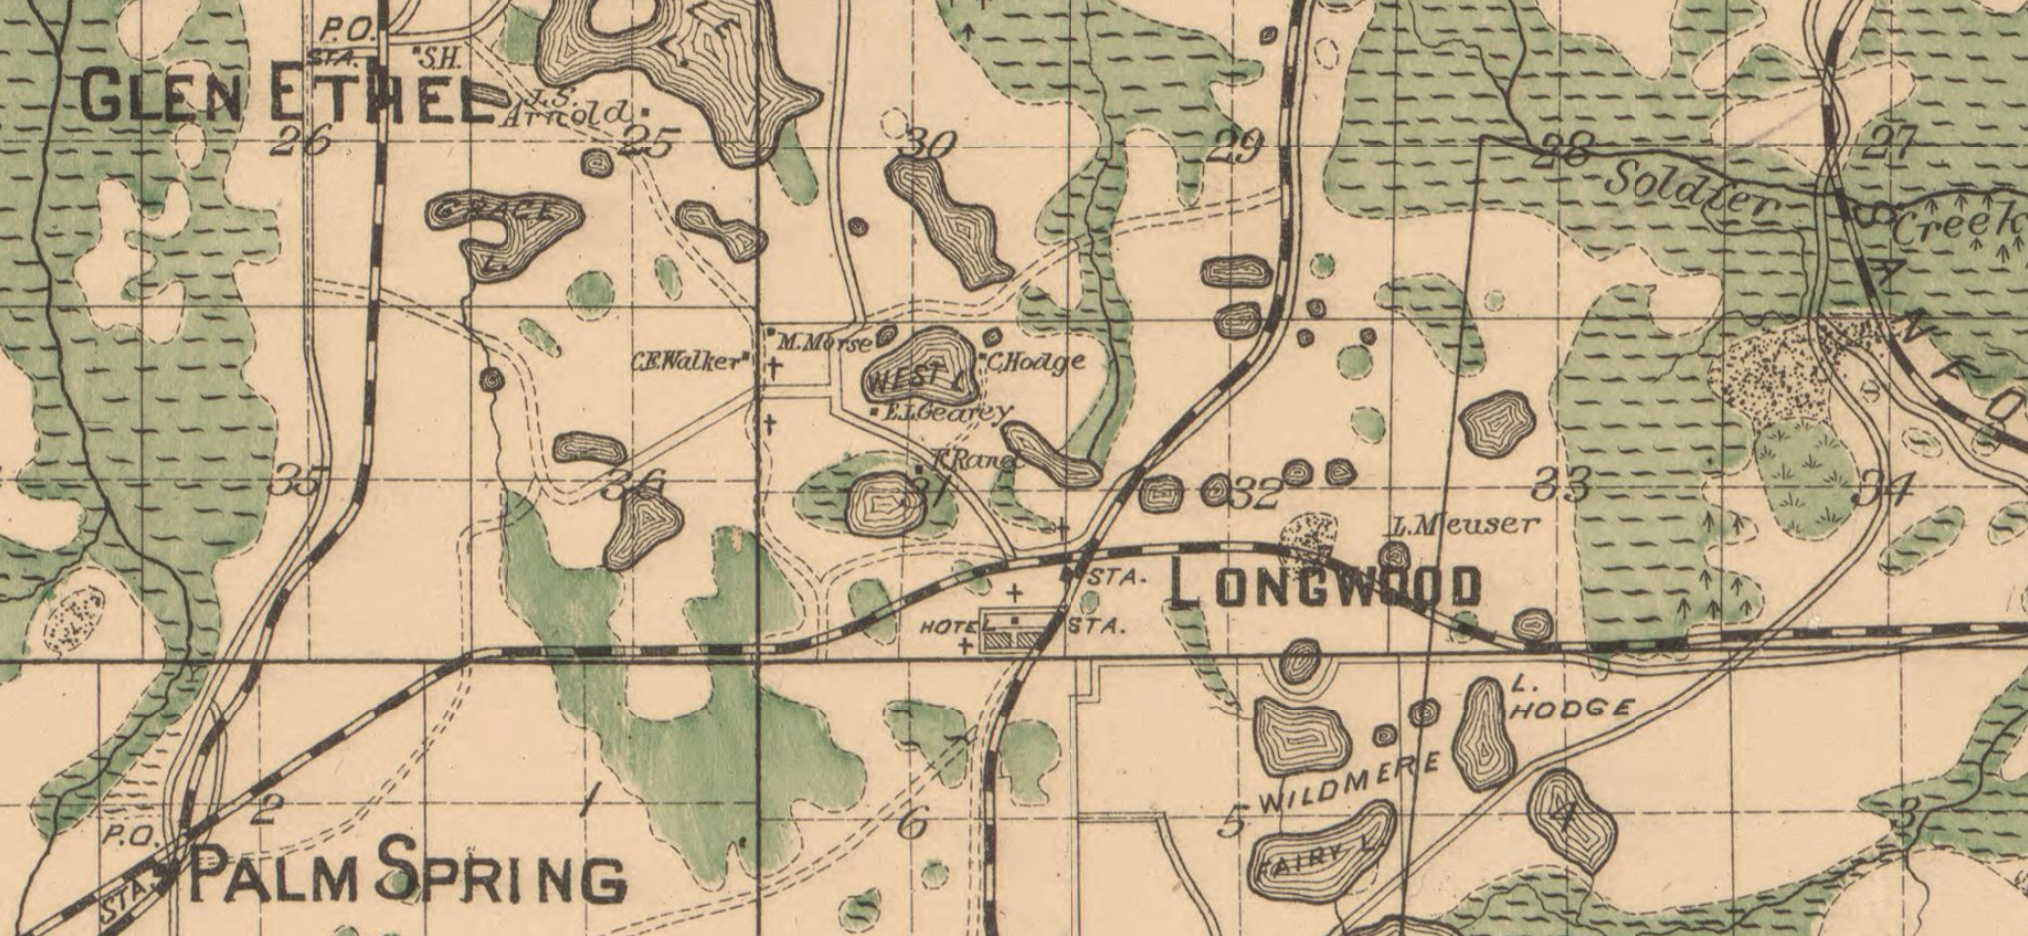 1890 map showing Longwood area. You can see two churches denoted in West Longwood, along what is generally now the path of Rangeline Road.